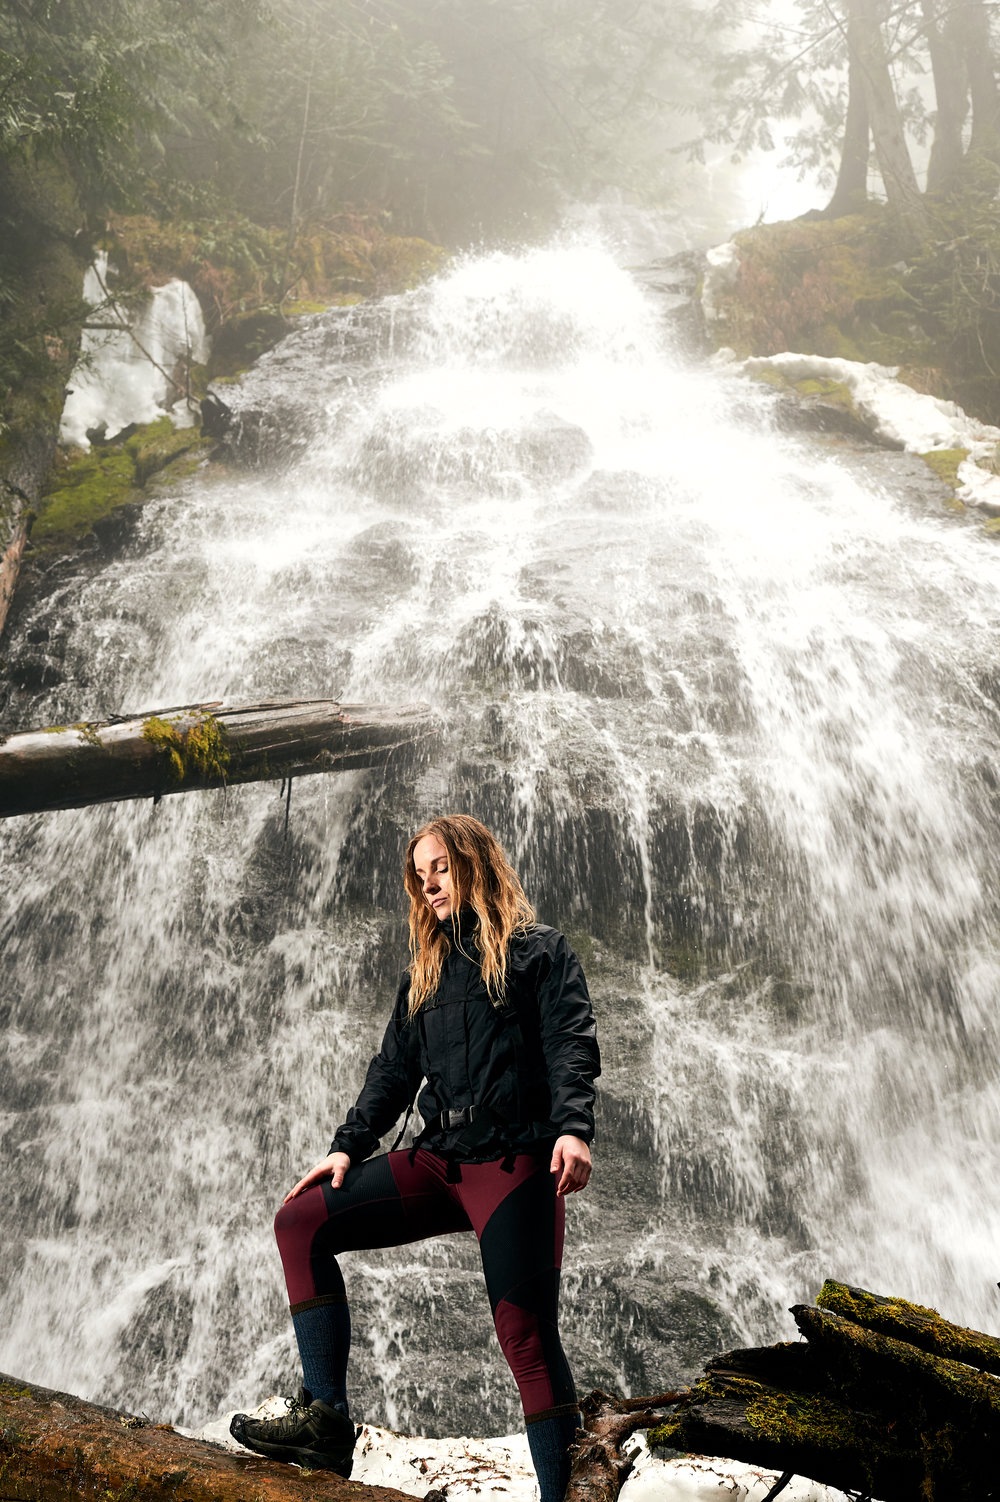 Jessica at the lower falls.